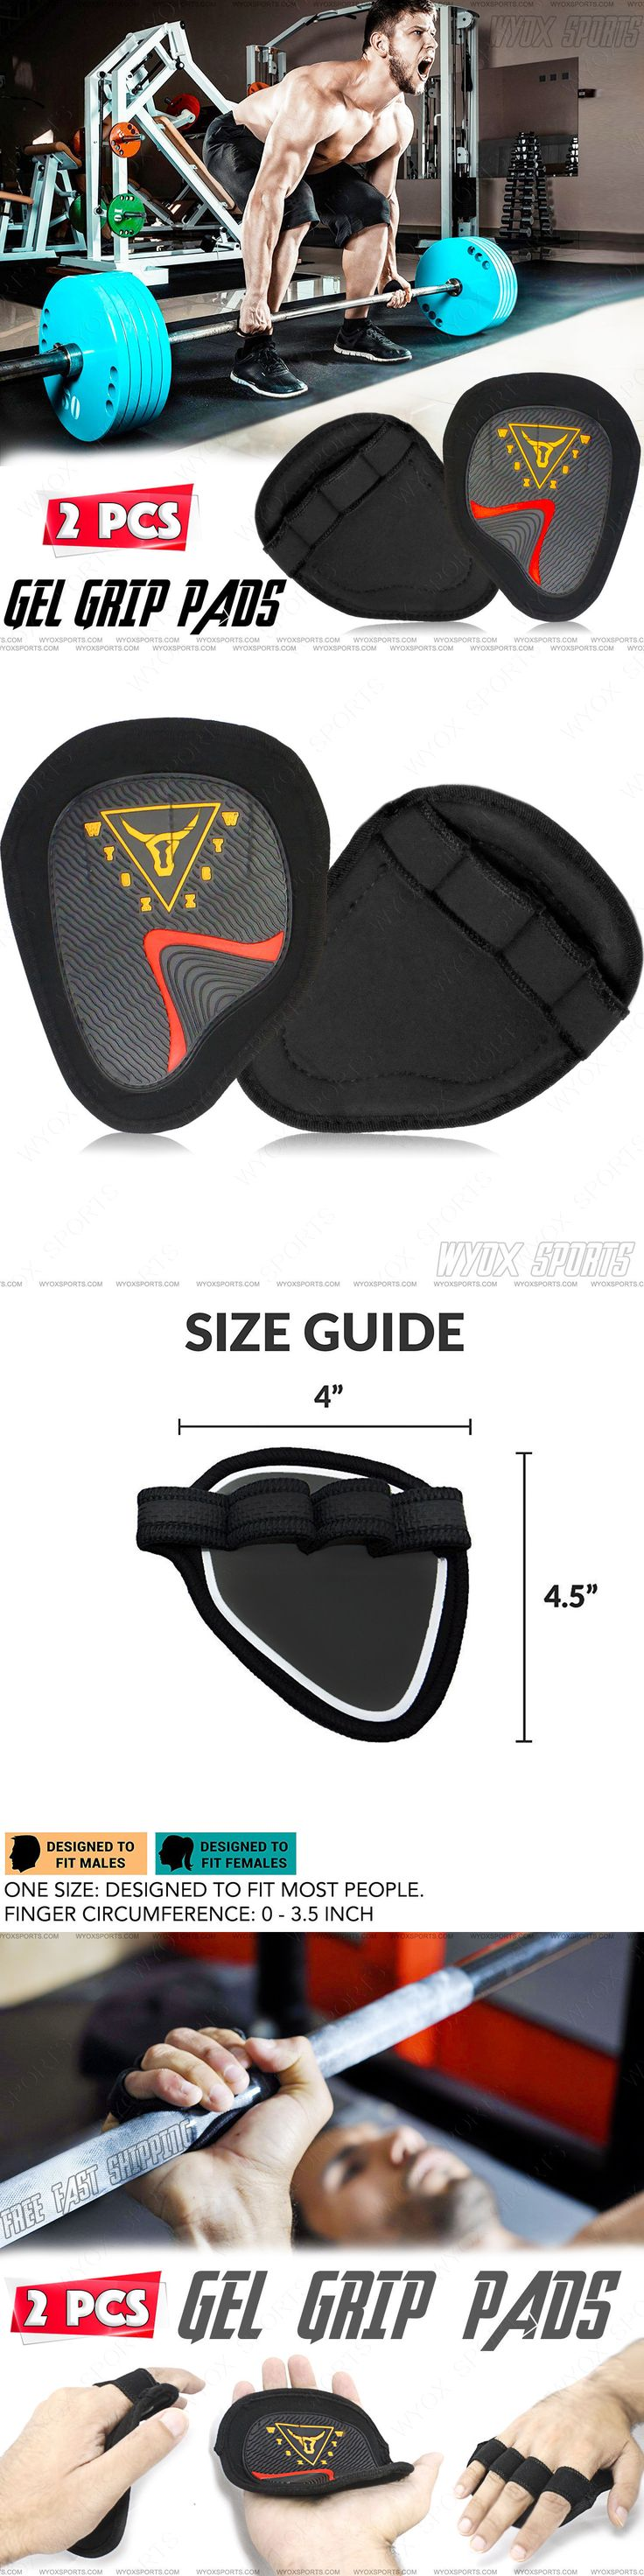 Abdominal straps crunch weight lifting door hanging gym chinning - Gloves Straps And Hooks 179820 Wyox Hand Grip Weight Lifting Pads Workout Gloves Gym Fitness